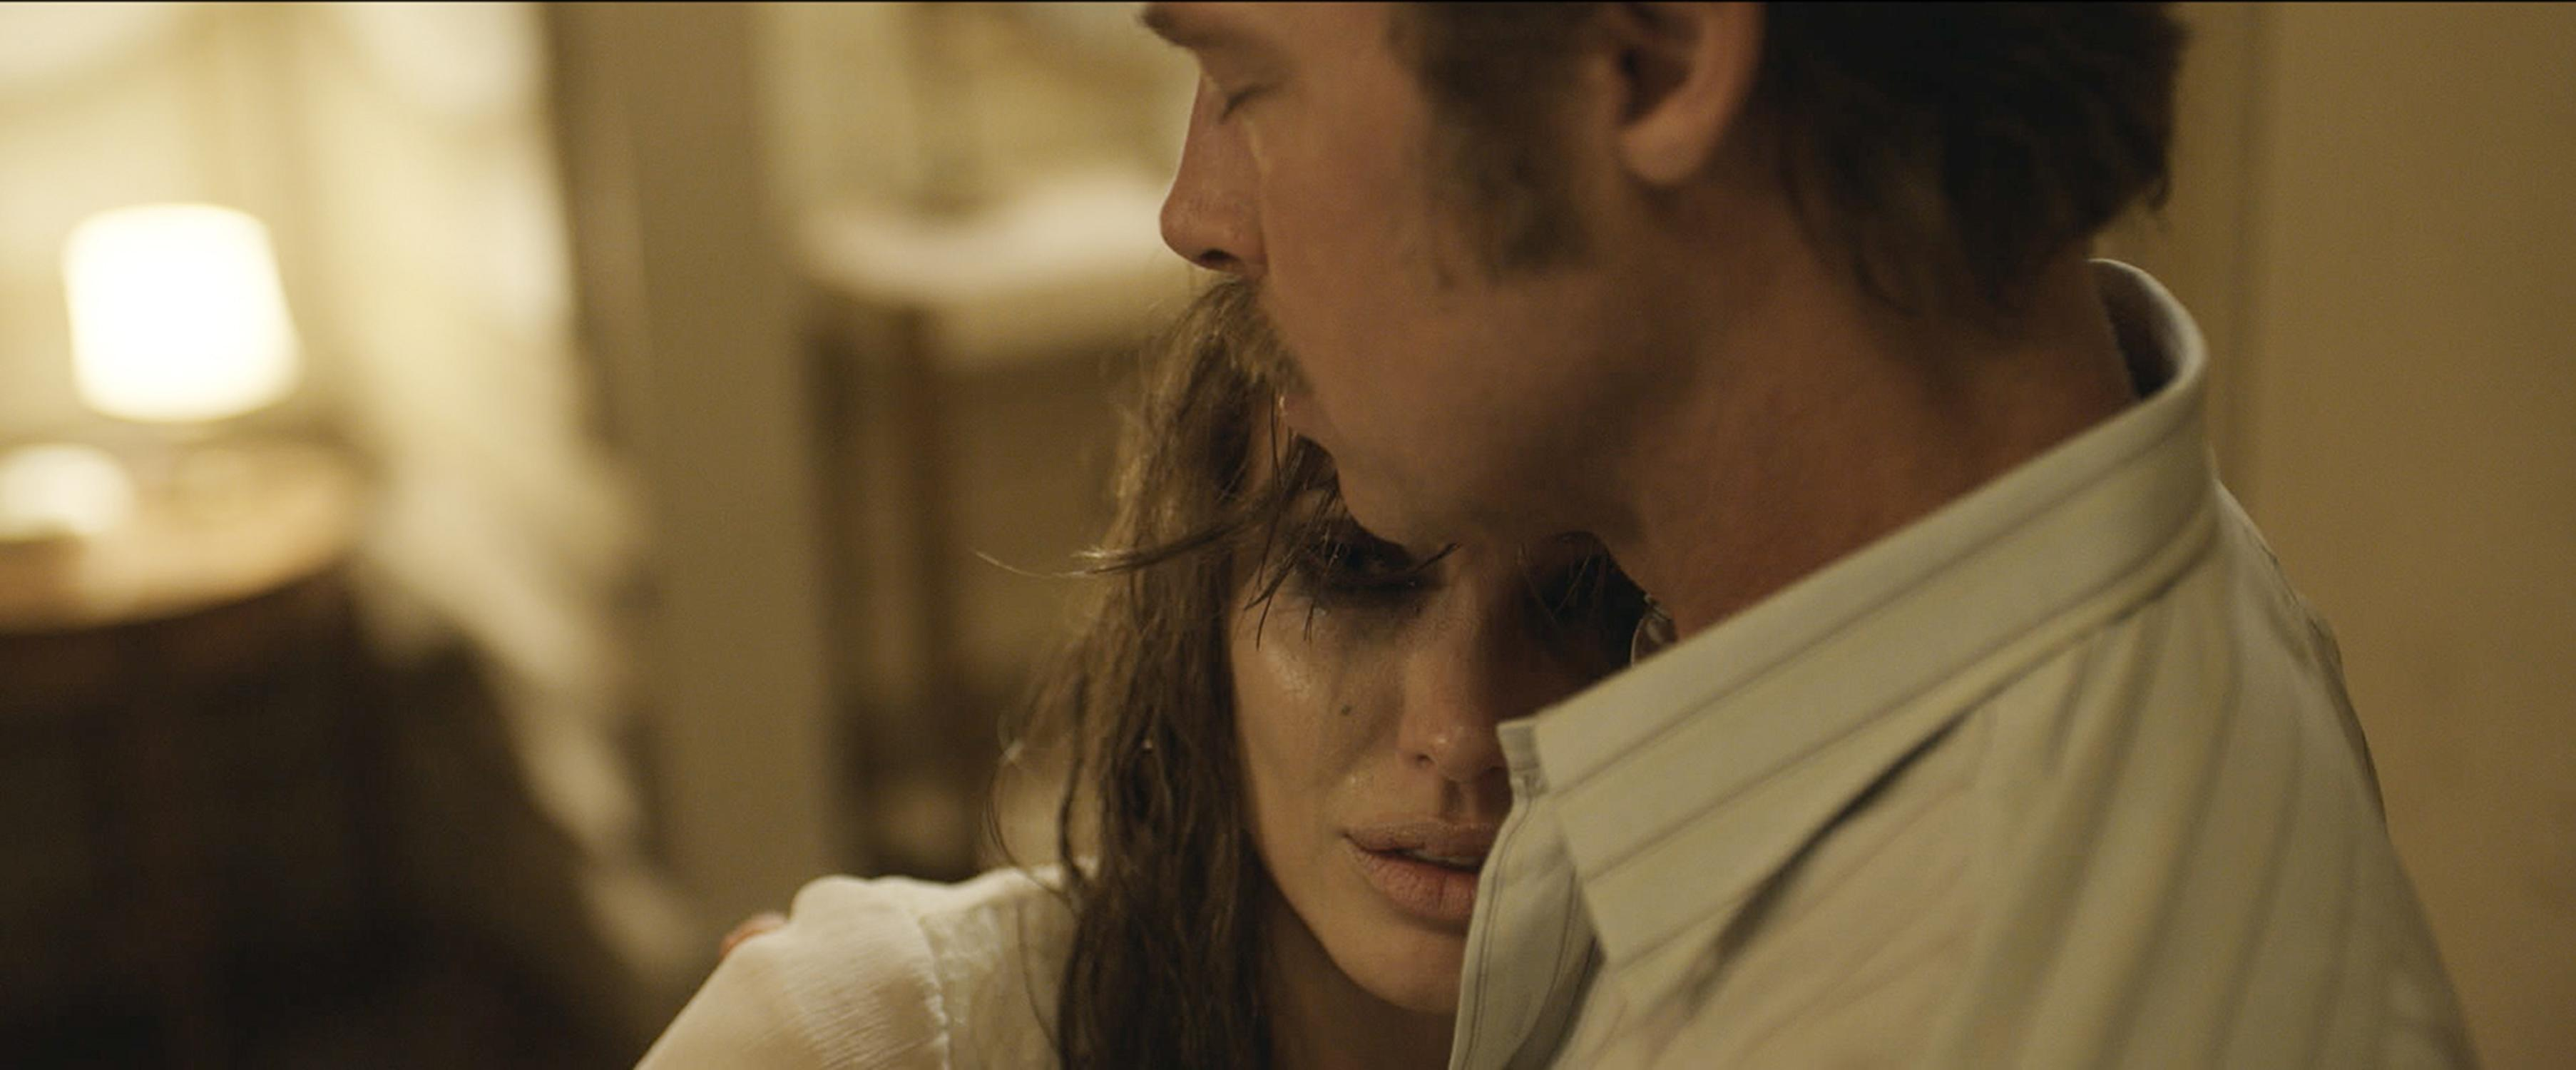 Angelina Jolie's 'By The Sea' To Open AFI Fest 2015